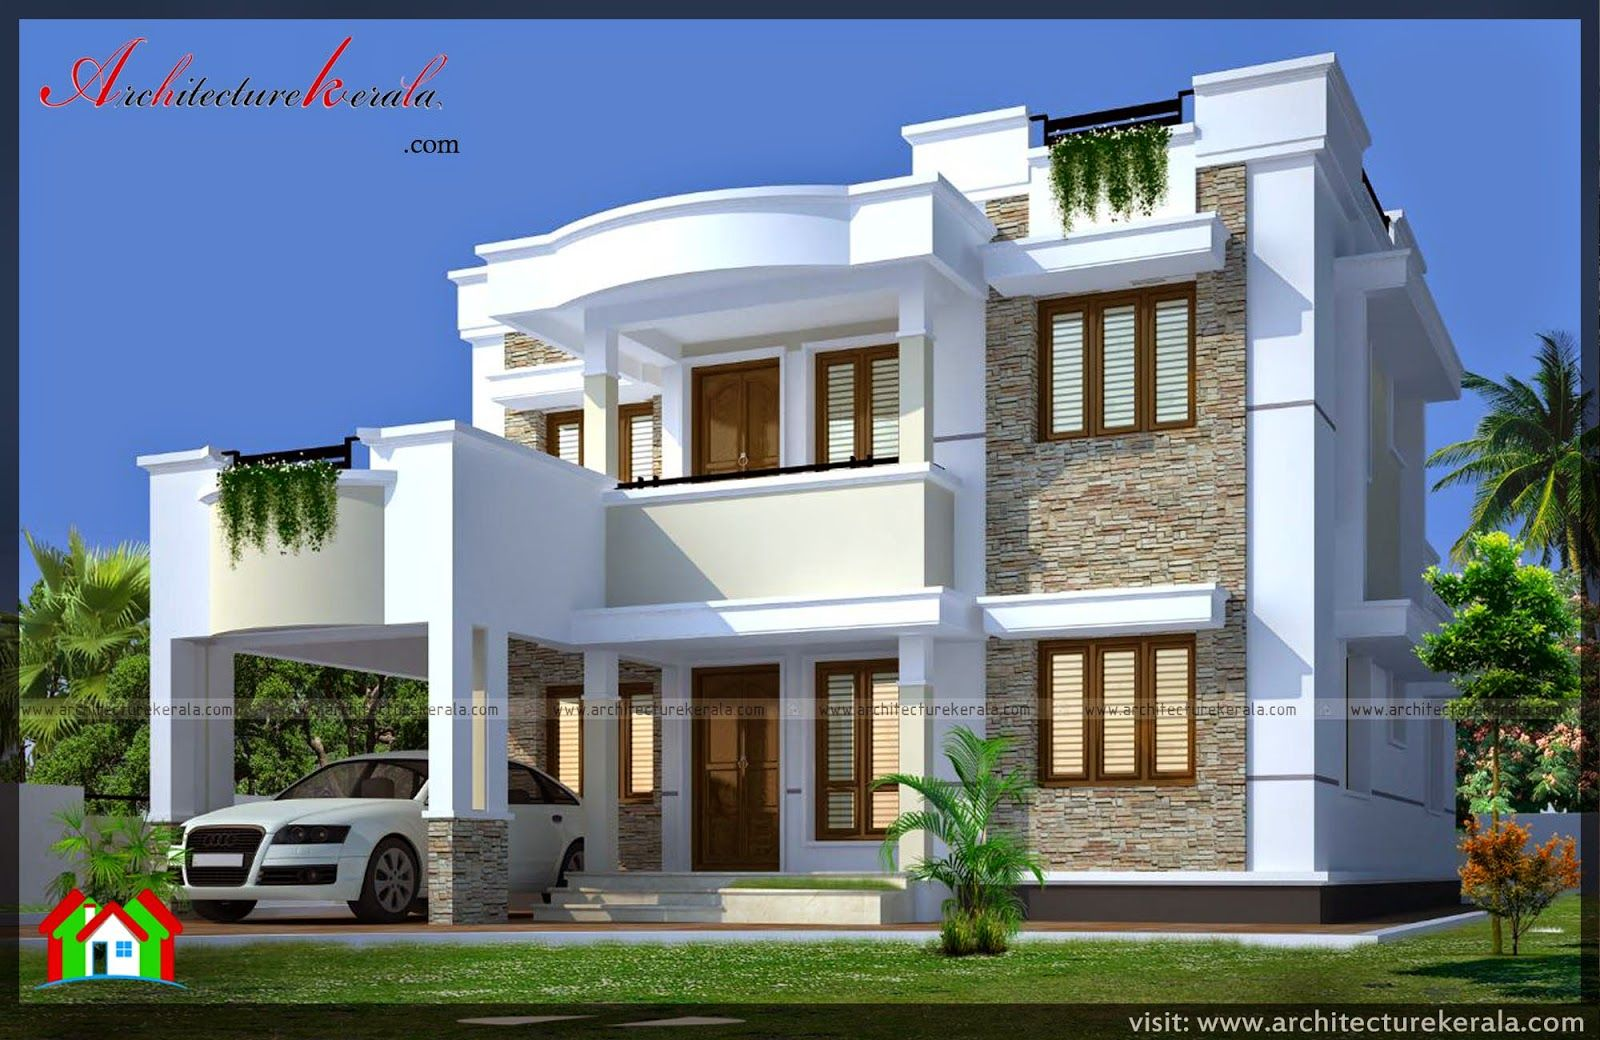 CONTEMPORARY ELEVATION AND HOUSE PLAN ARCHITECTURE